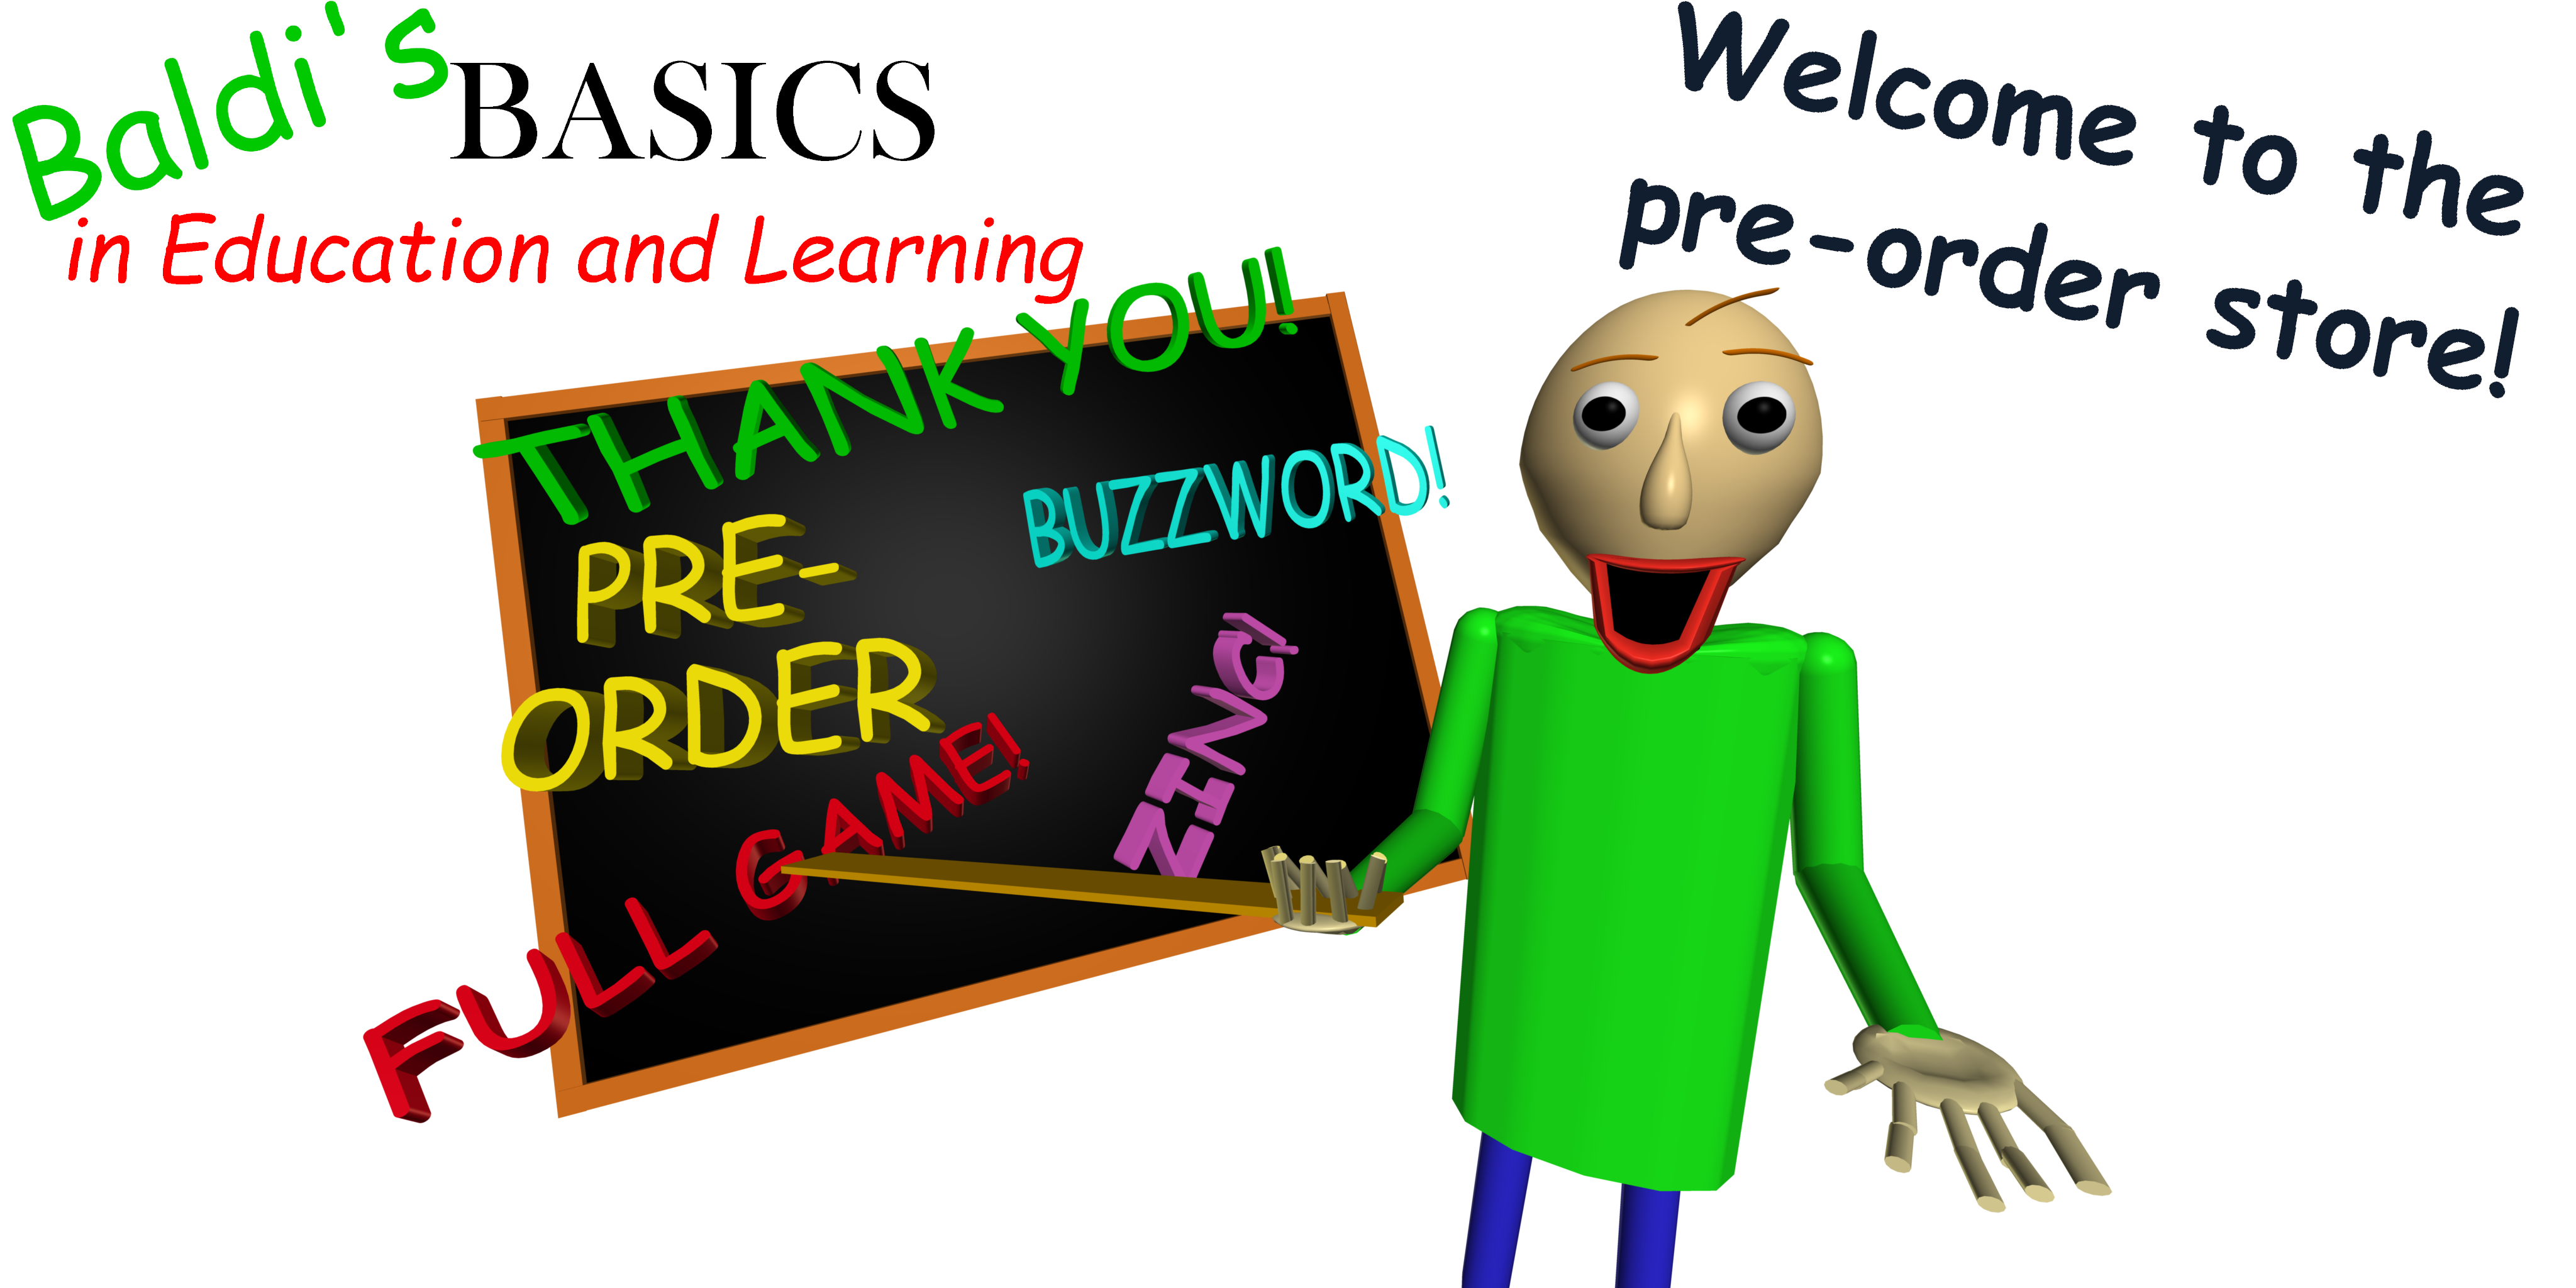 baldis basics in education and learning map